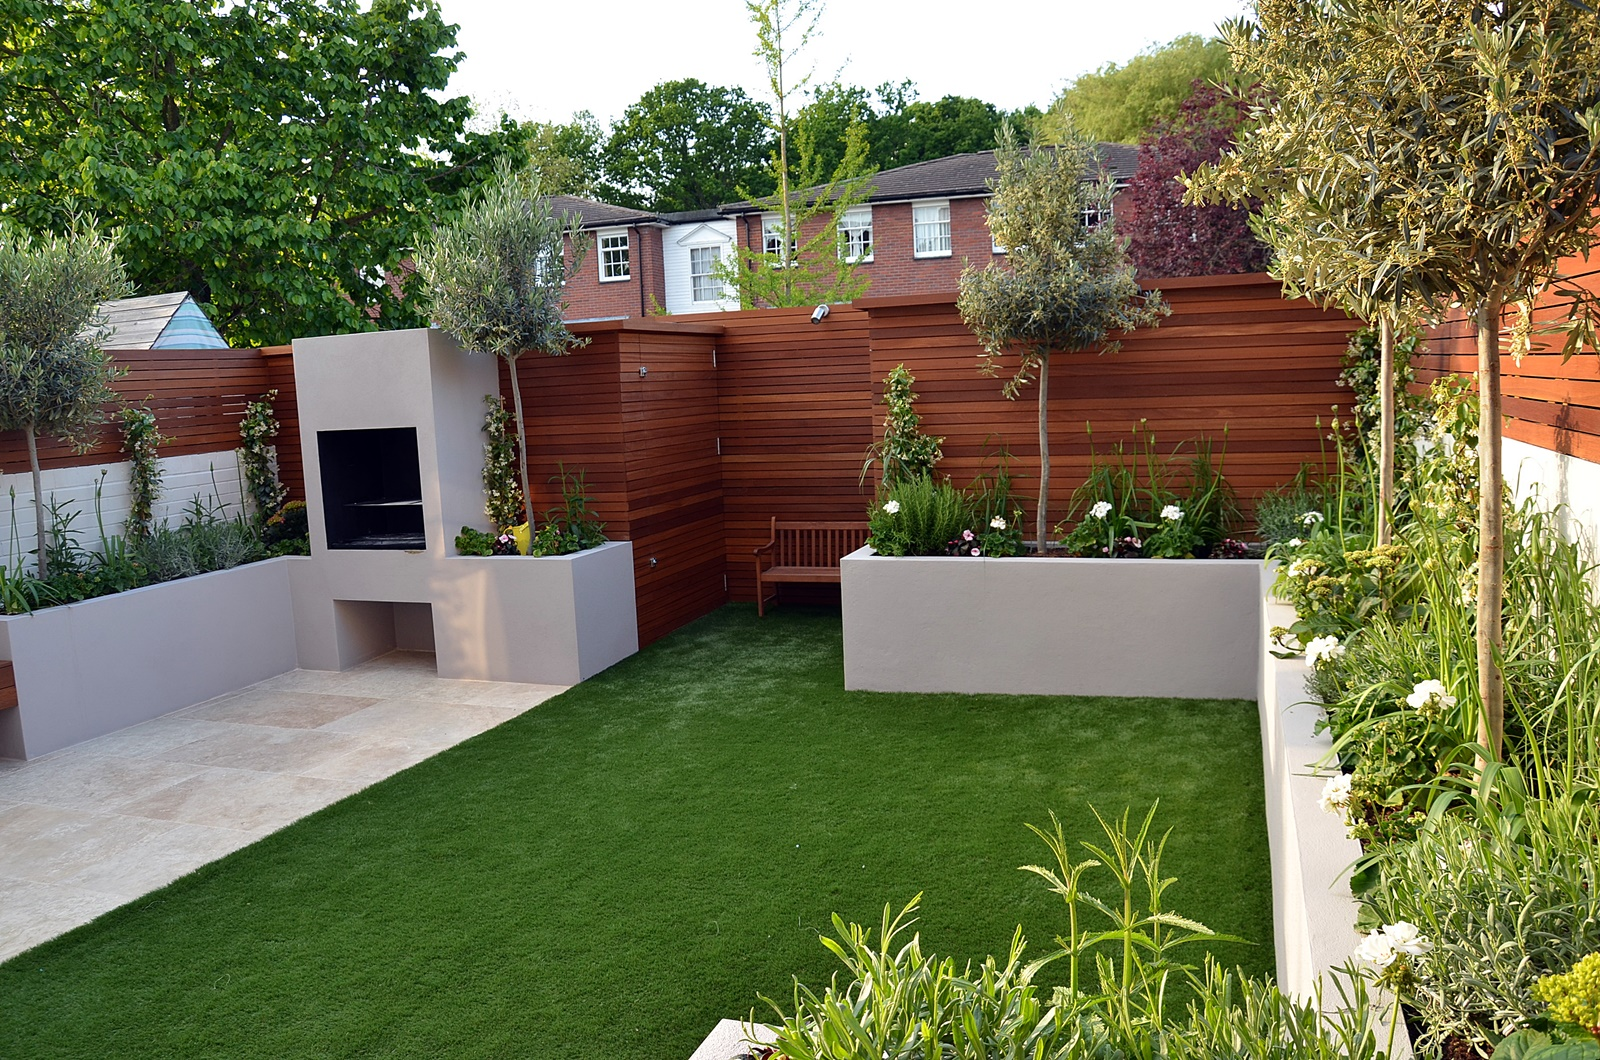 Modern garden design fulham chelsea clapham battersea for Modern garden rooms london